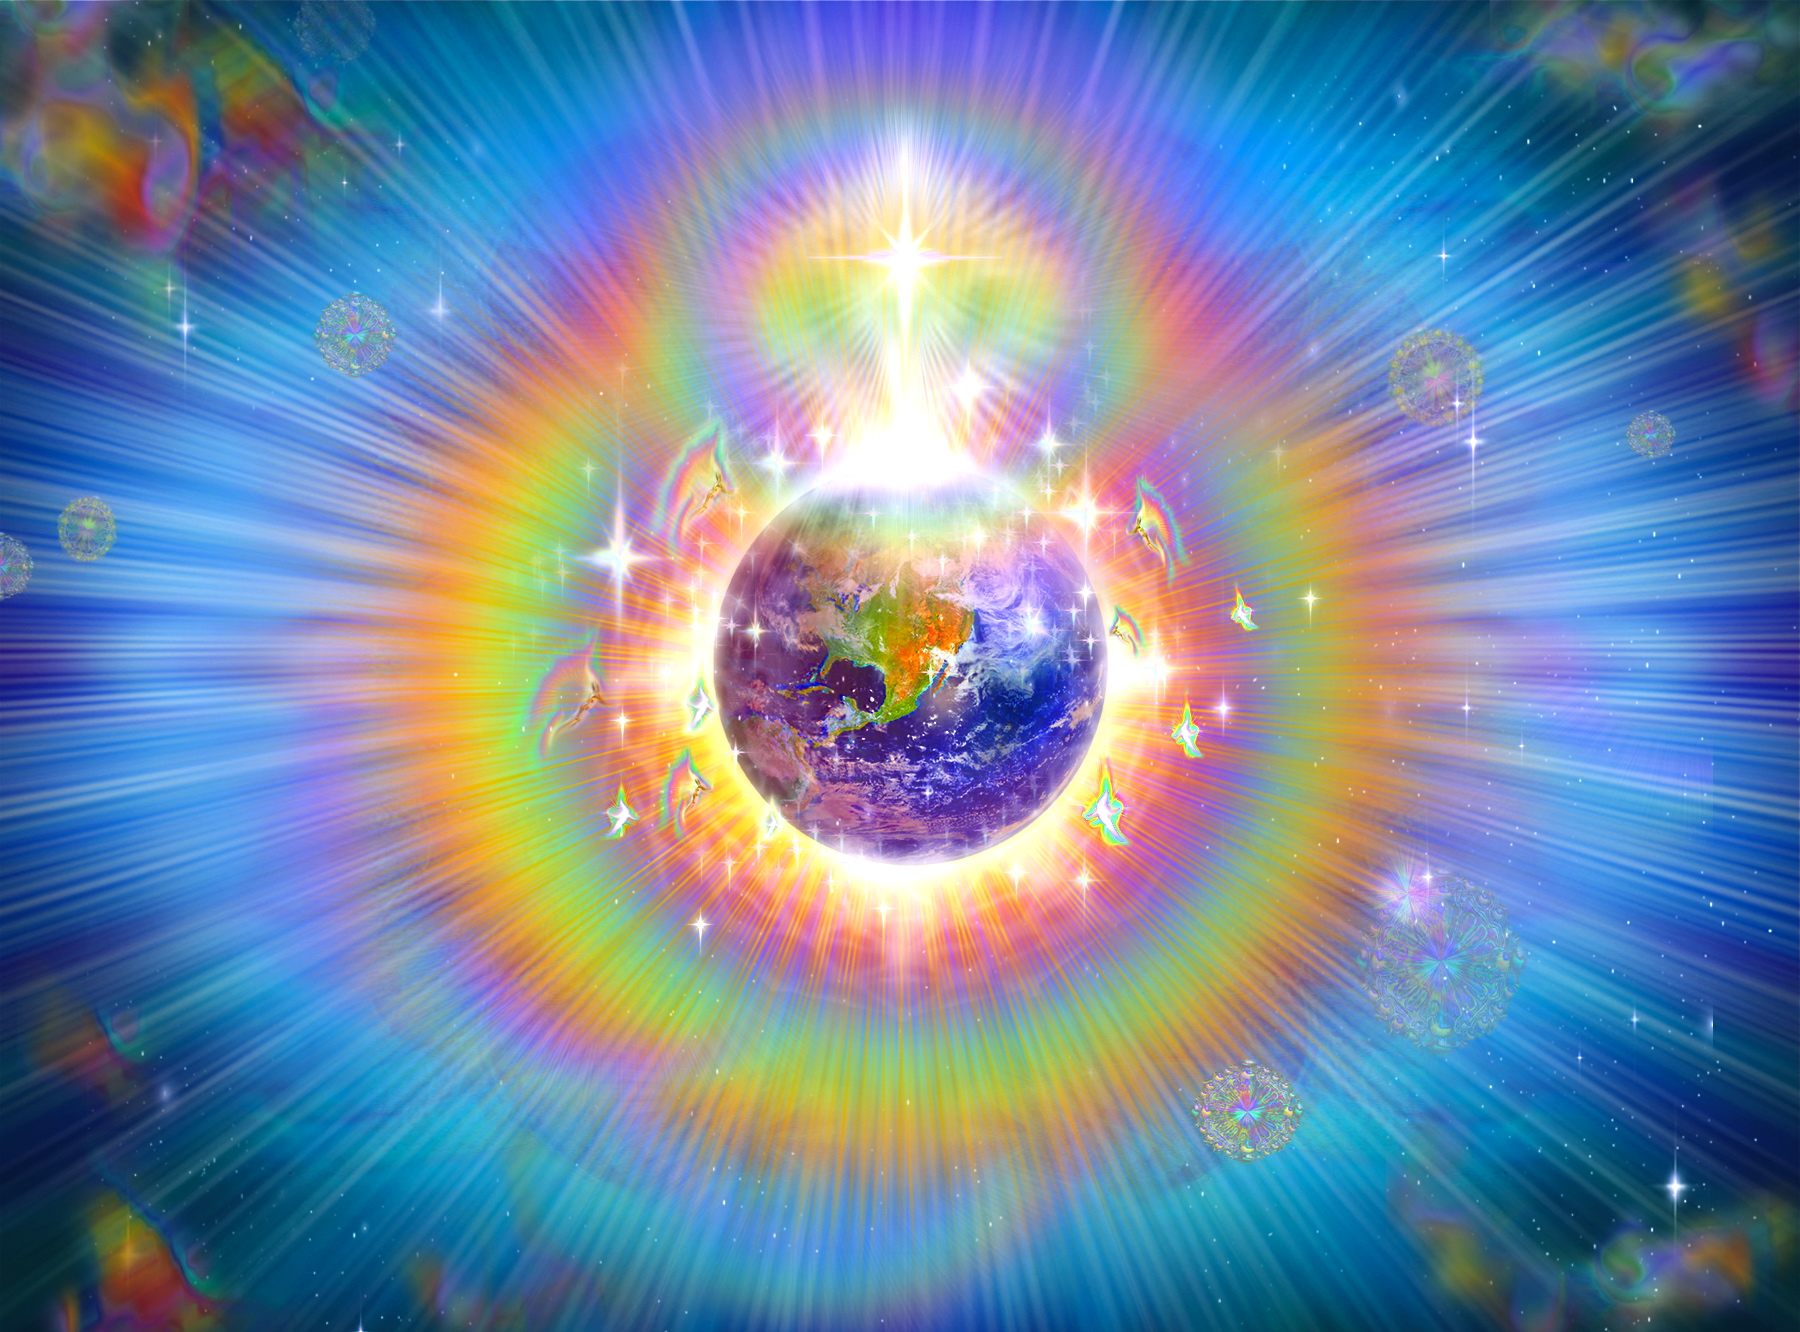 Our True Ascension: A Message from the Spiritual Hierarchy Channeled by Giselle Koy